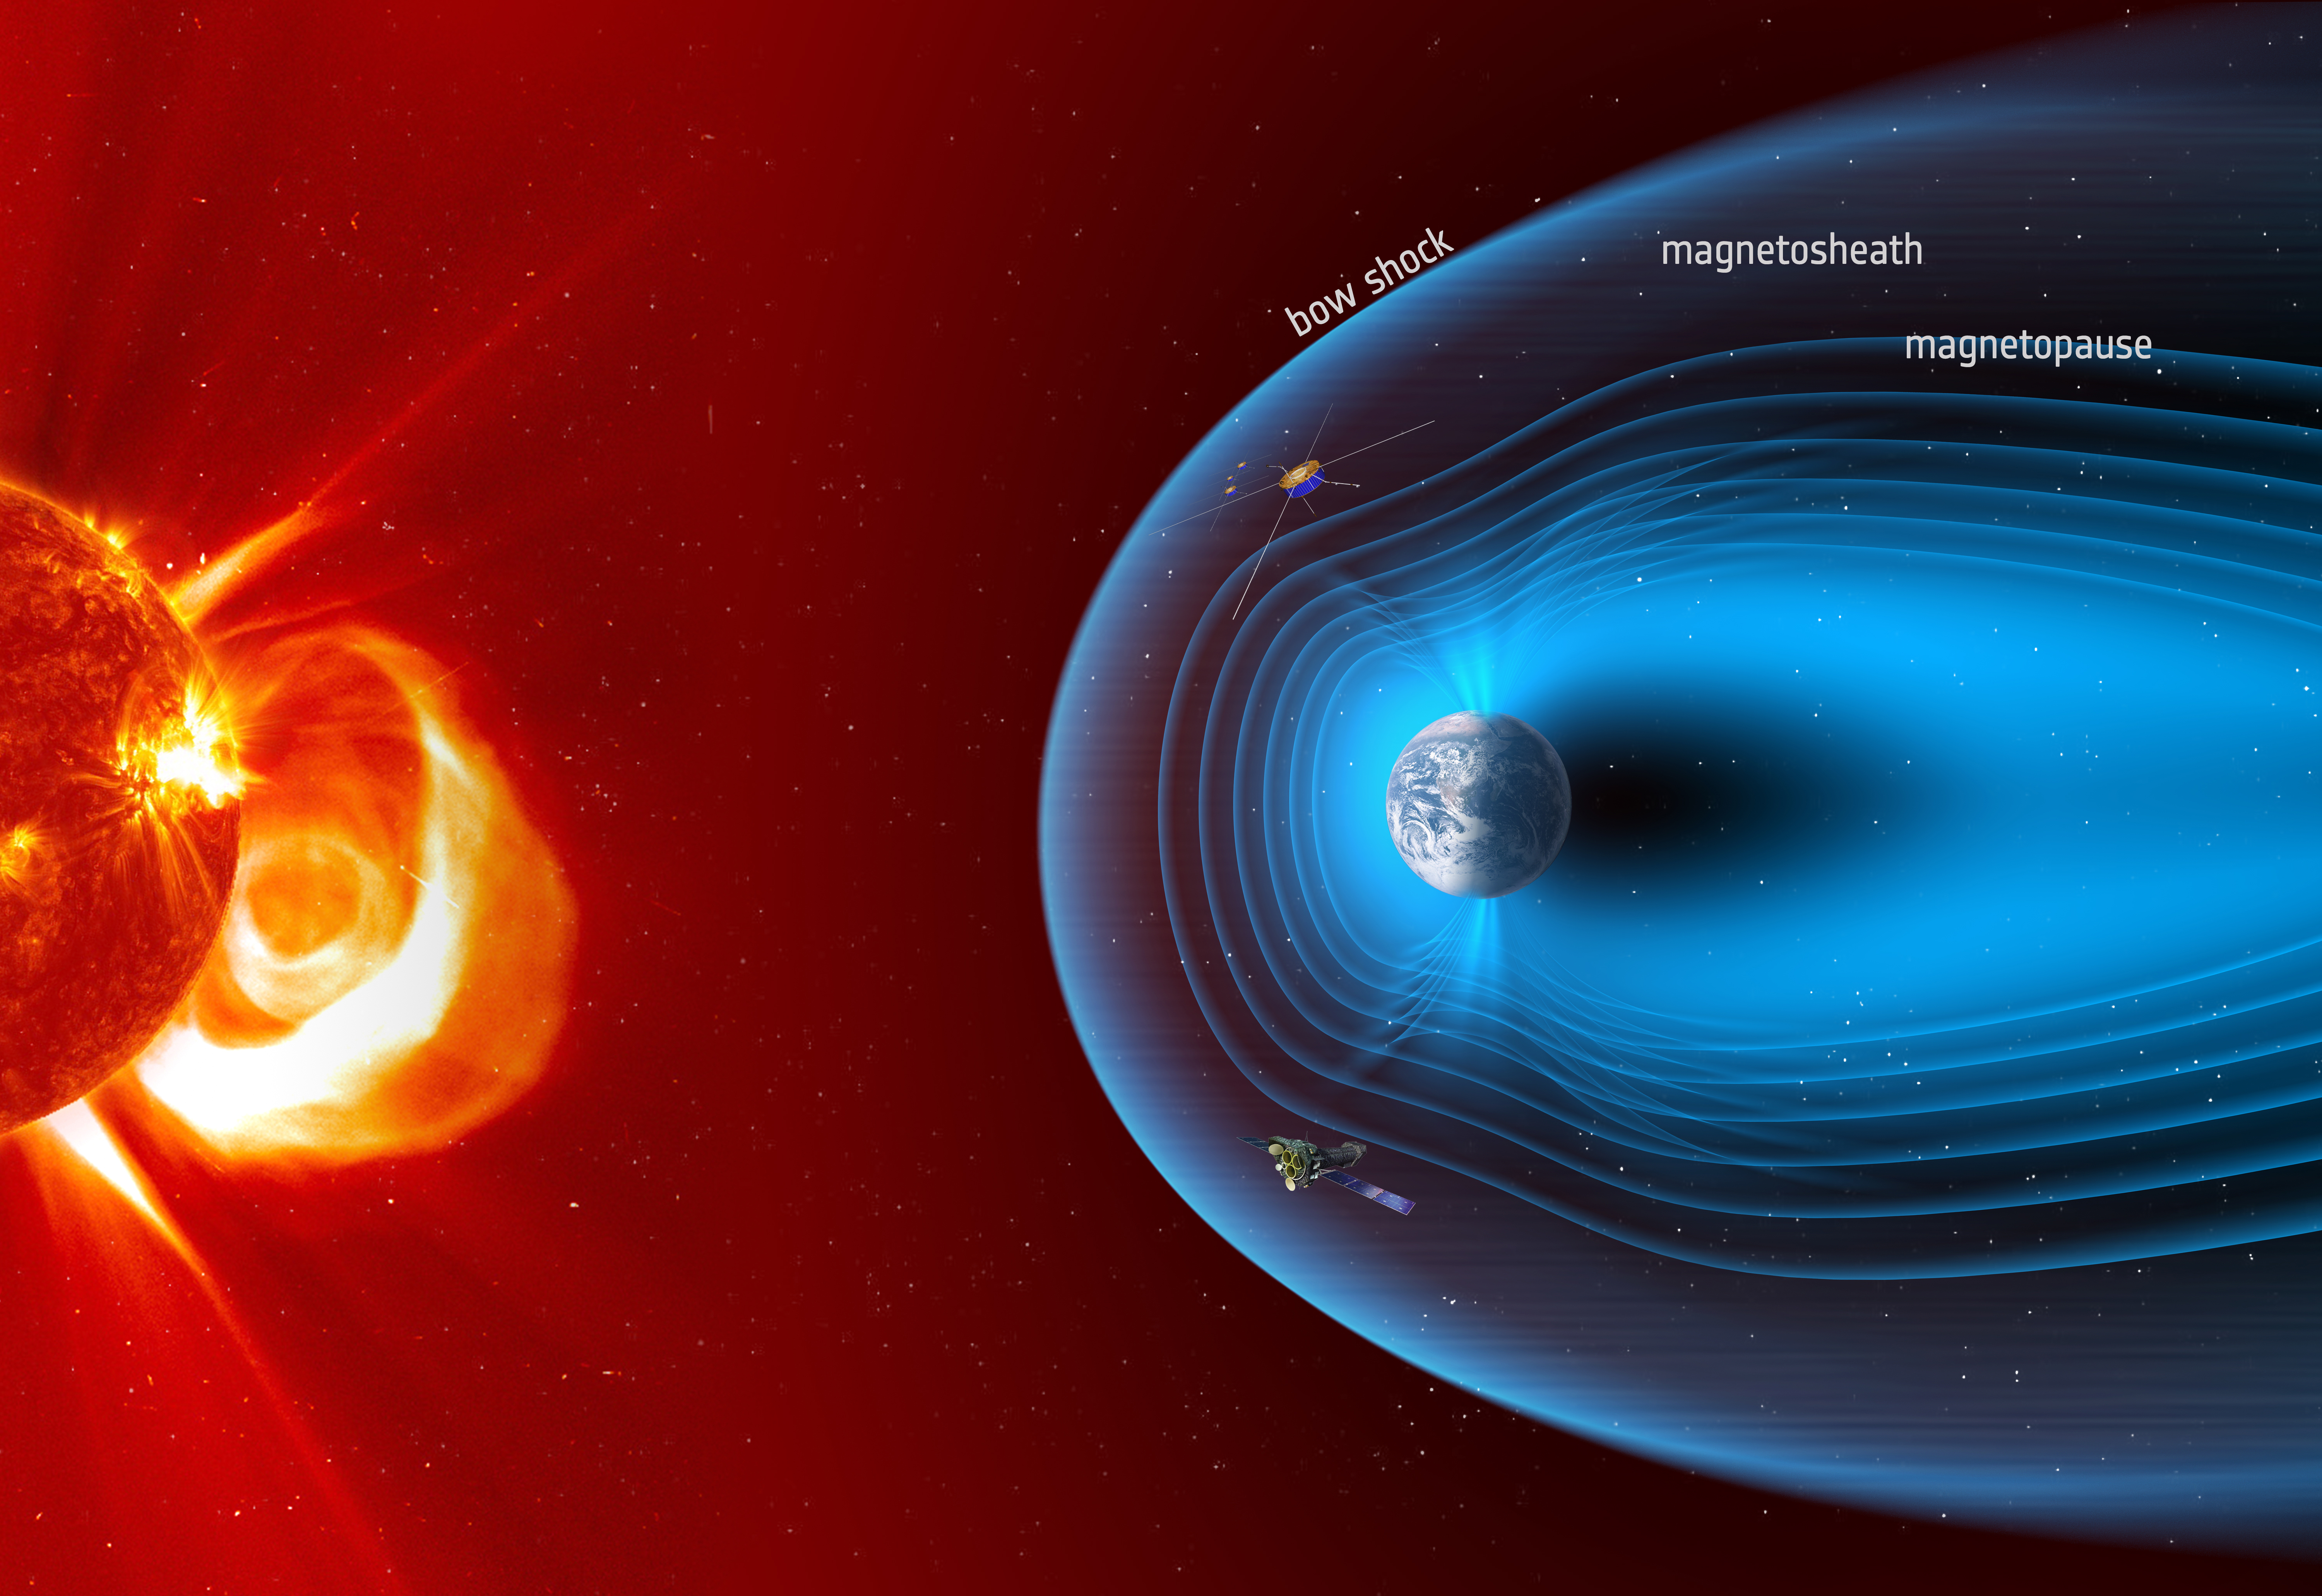 1567214164663-Magnetosphere_with_XMM-Newton_and_Cluster.jpg